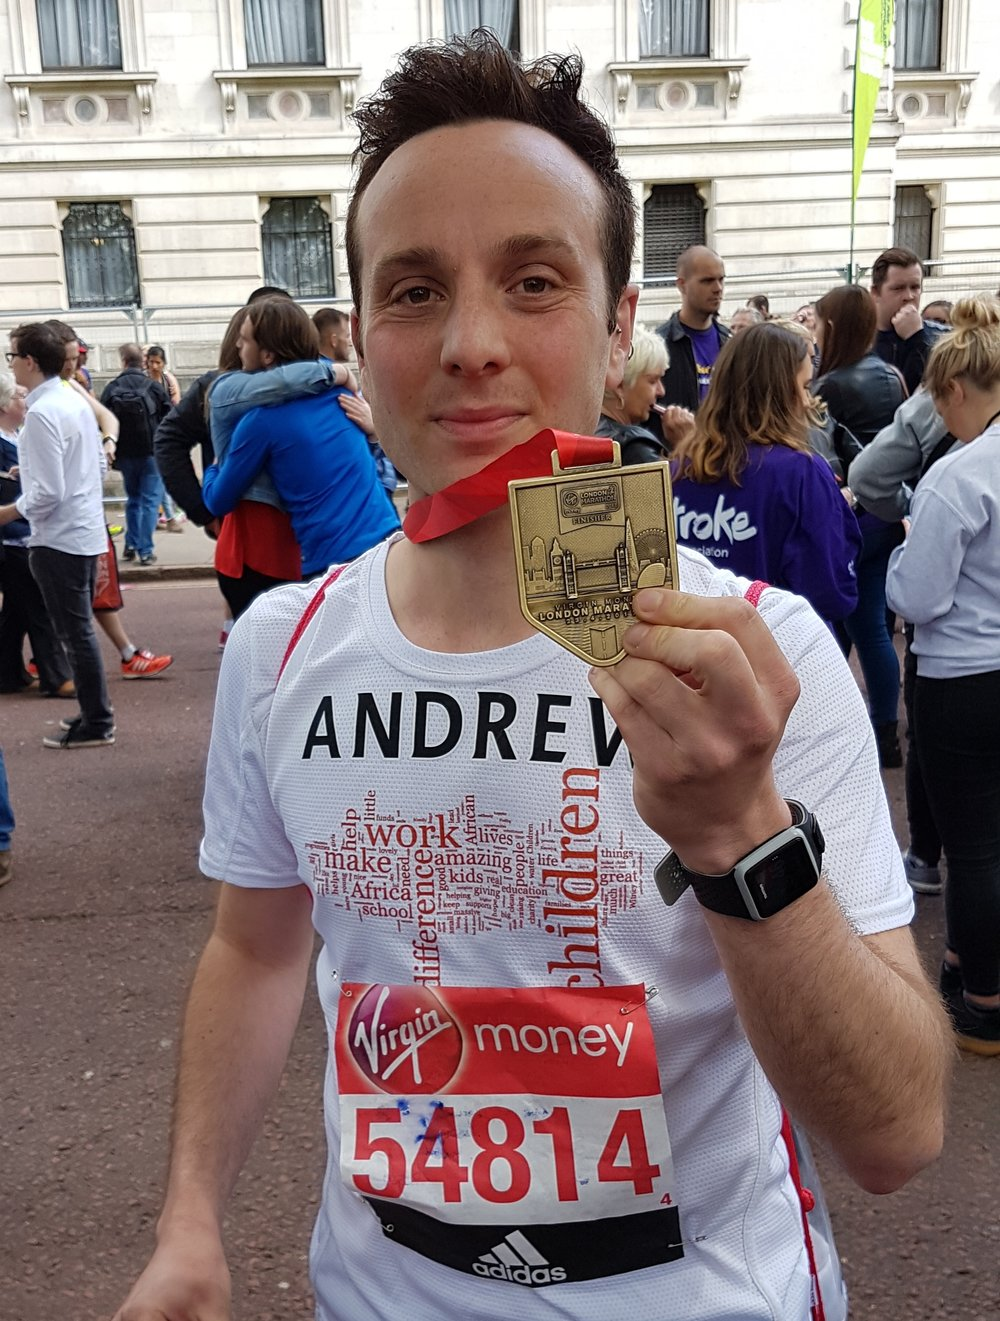 Andrew with his finisher's medal from the 2017 Virgin Money London Marathon.